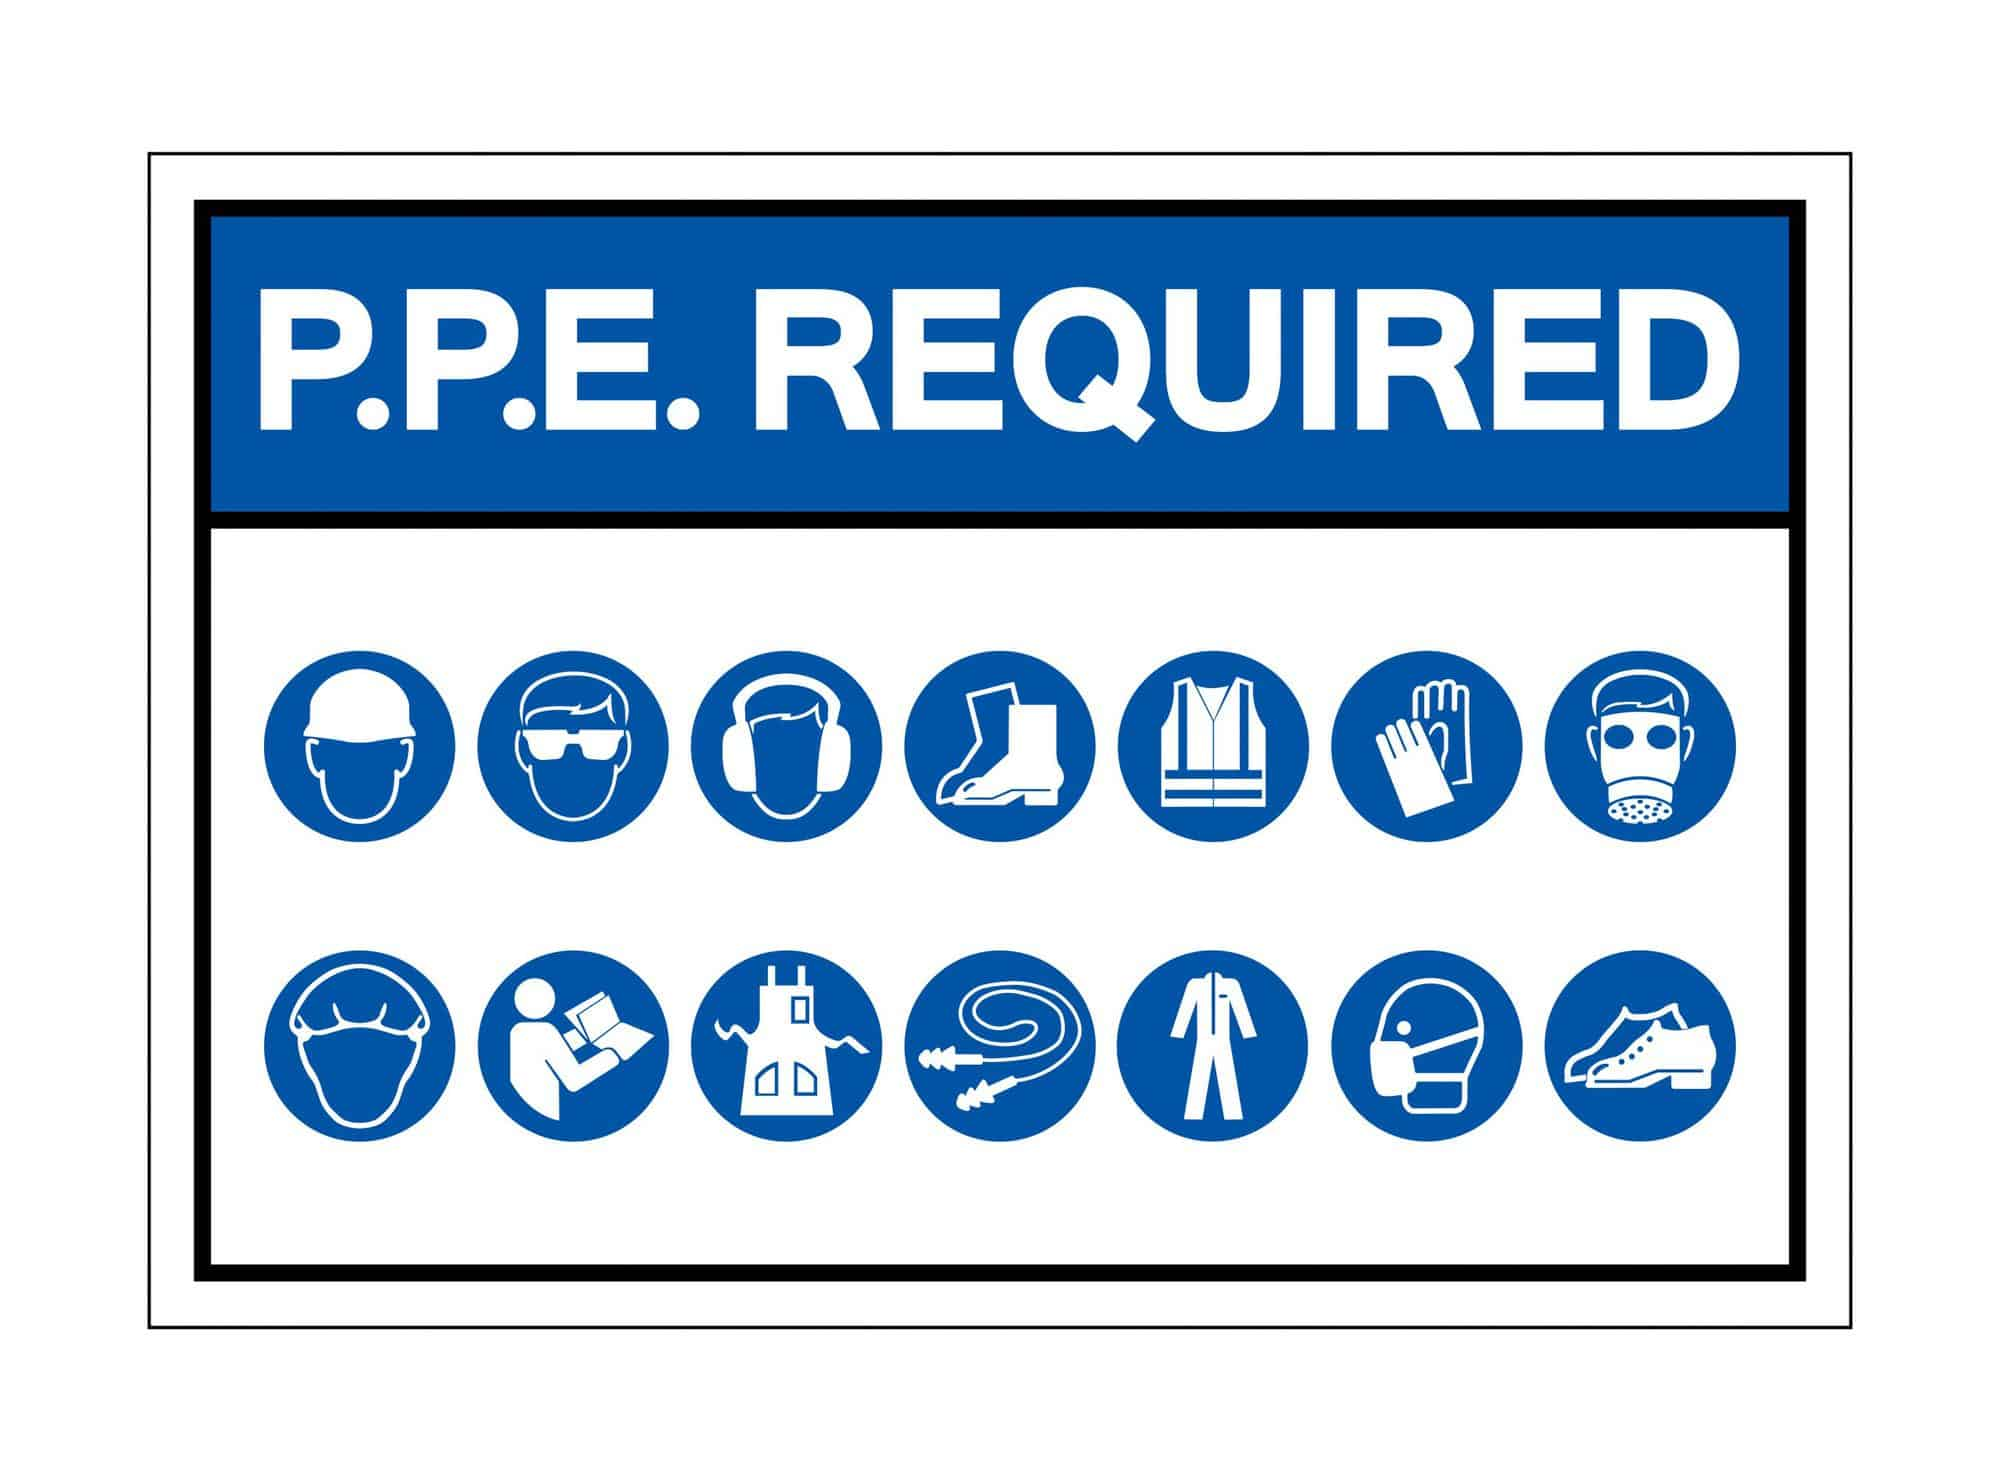 Why is PPE important in the workplace scaled